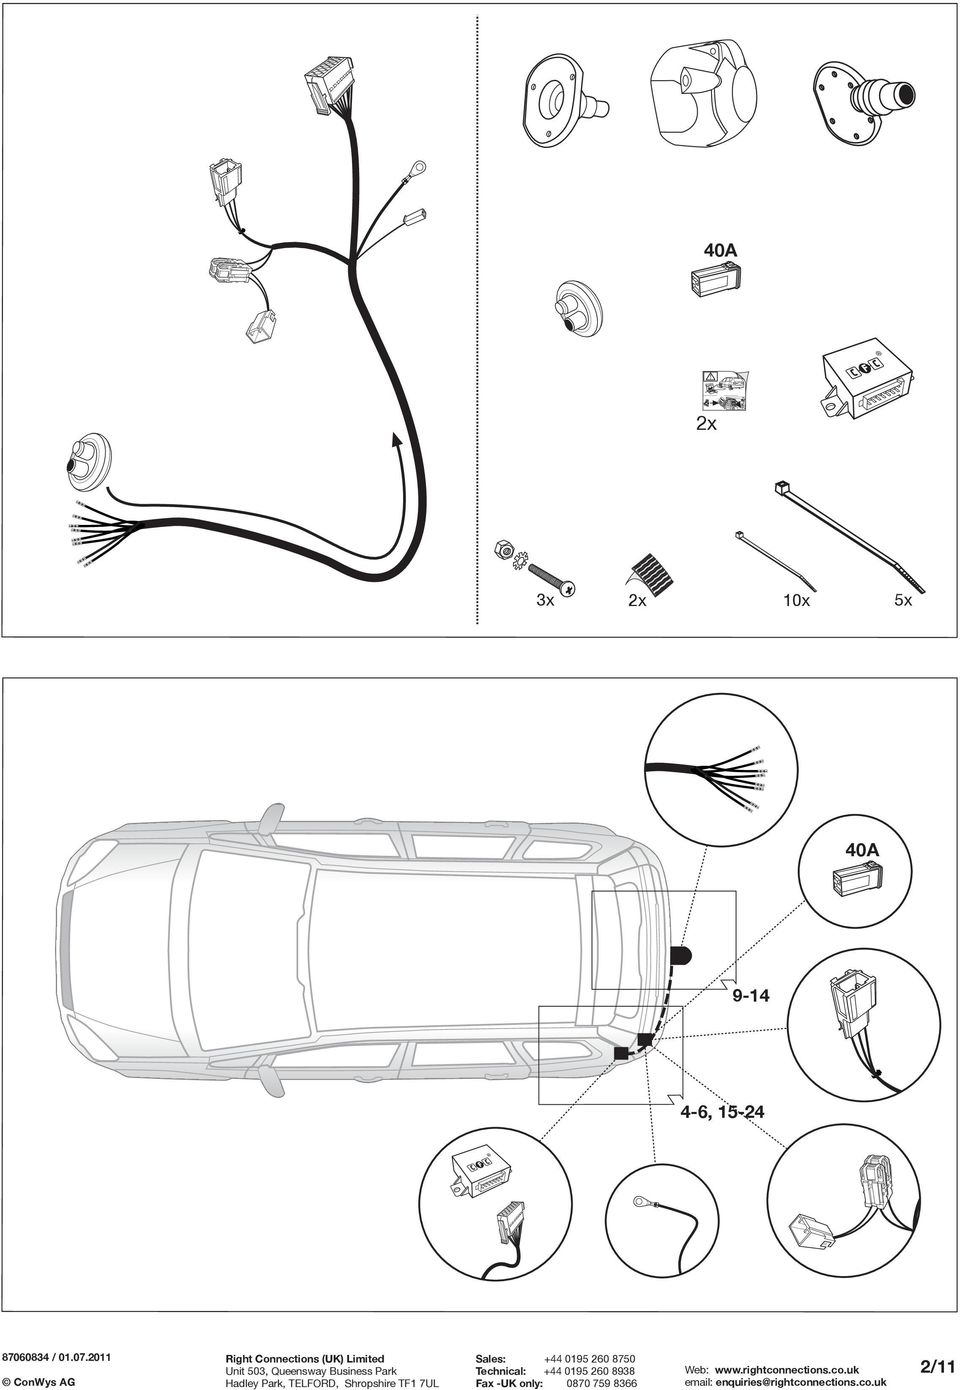 Fitting Instructions Ford Important Electric Wiring Kit For Towbars 7 Pin Towbar Electrics Diagram 5x 40a 9 14